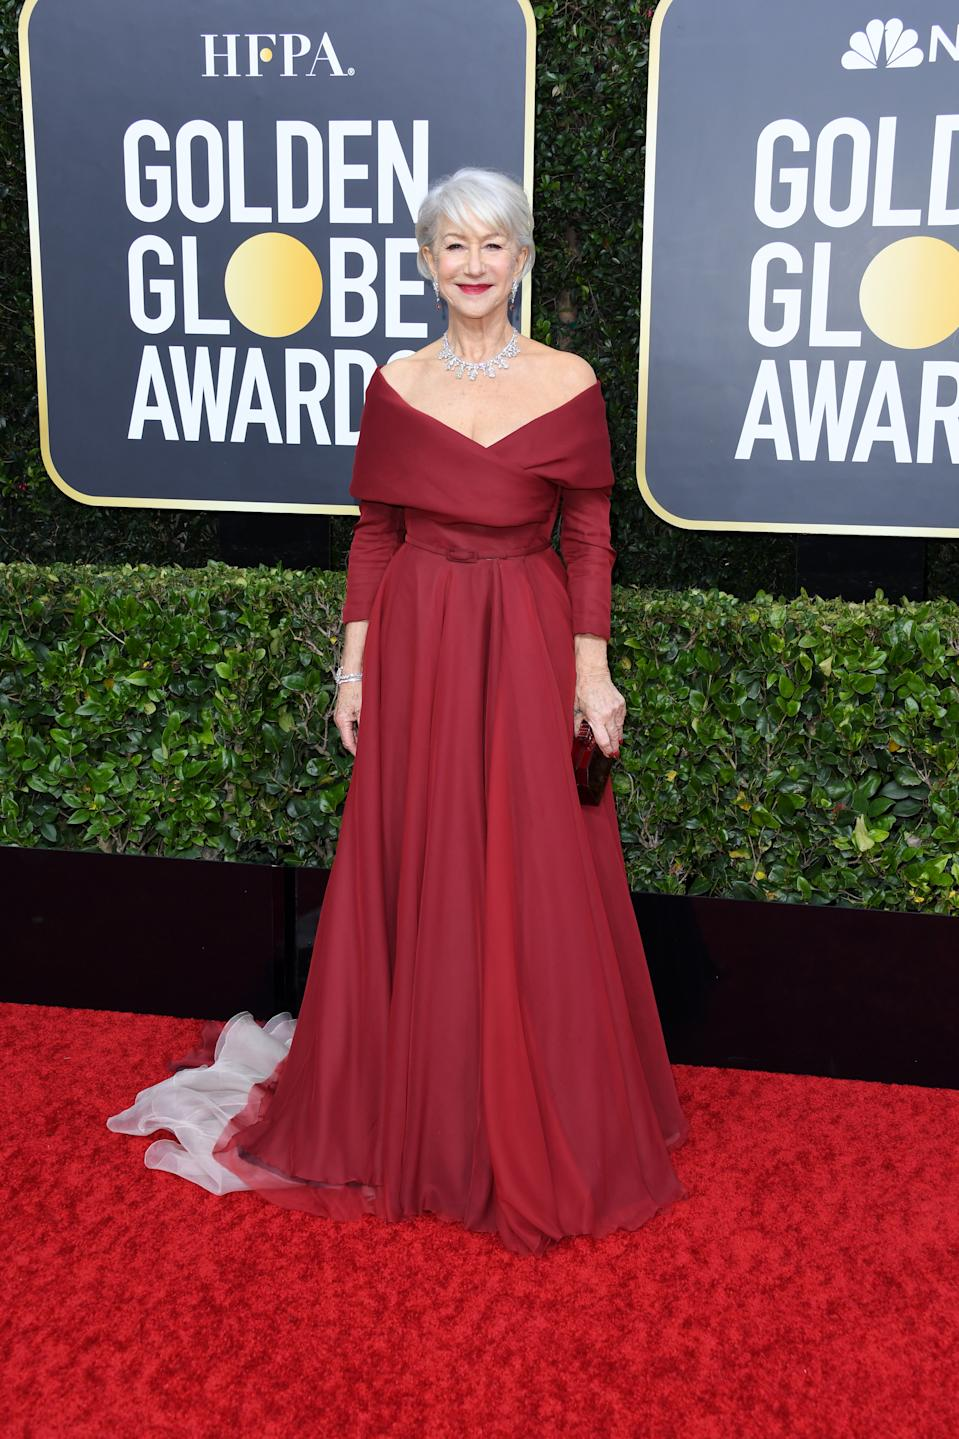 """A red carpet favourite, the nominee for her starring role in """"Catherine the Great"""" looked regal in an off-the-shoulder gown. (Photo by Jon Kopaloff/Getty Images)"""